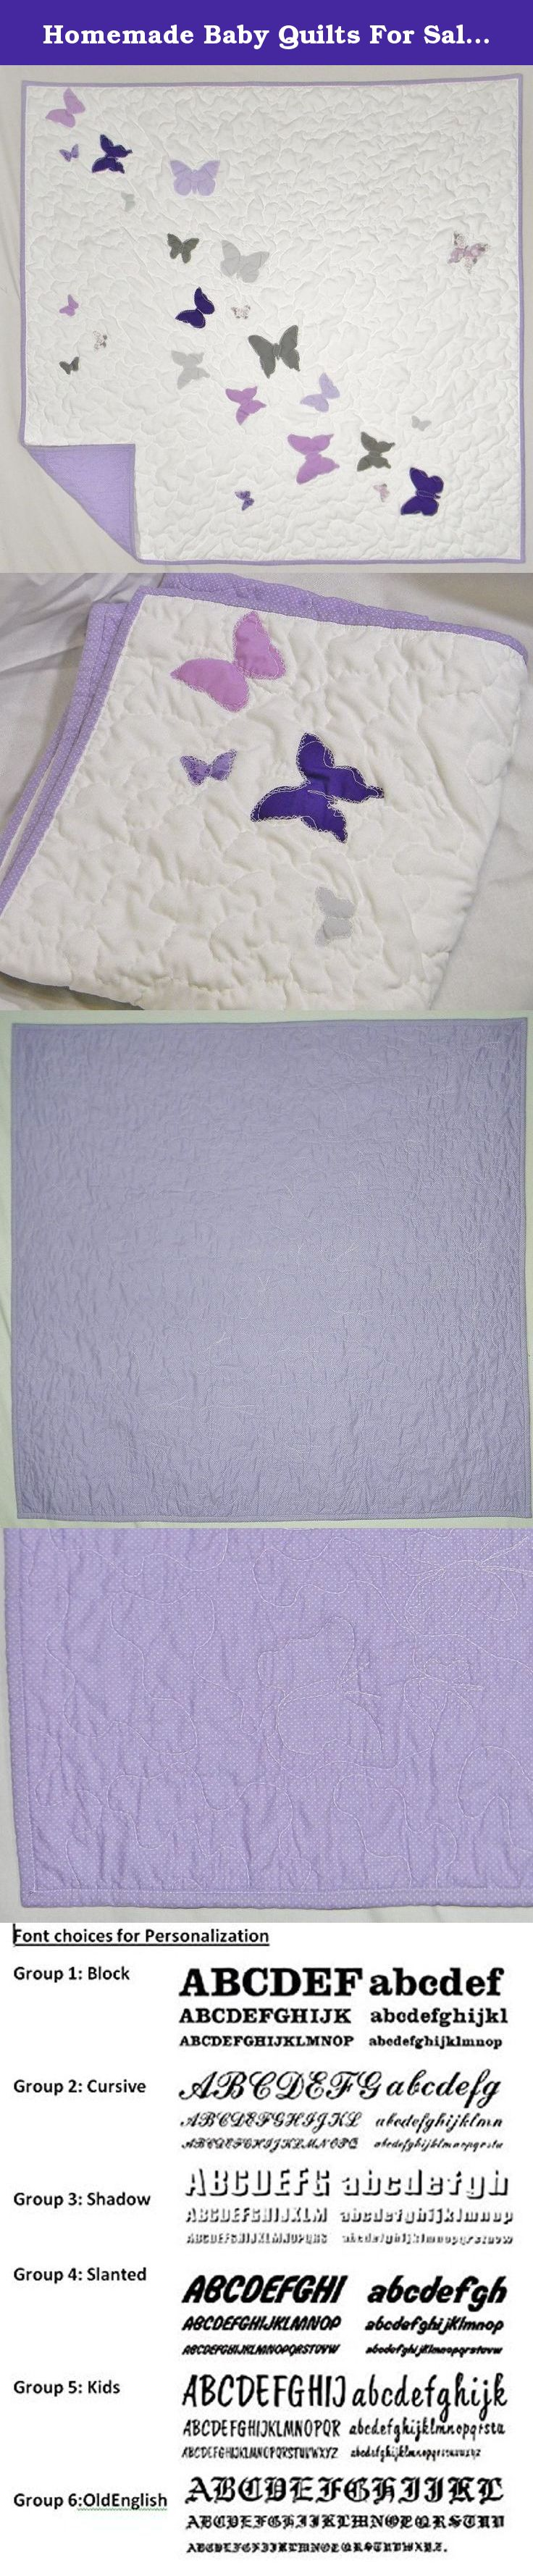 Crib size quilts for sale - Homemade Baby Quilts For Sale Purple Nursery Bedding Baby Girl Quilt Butterfly Nursery